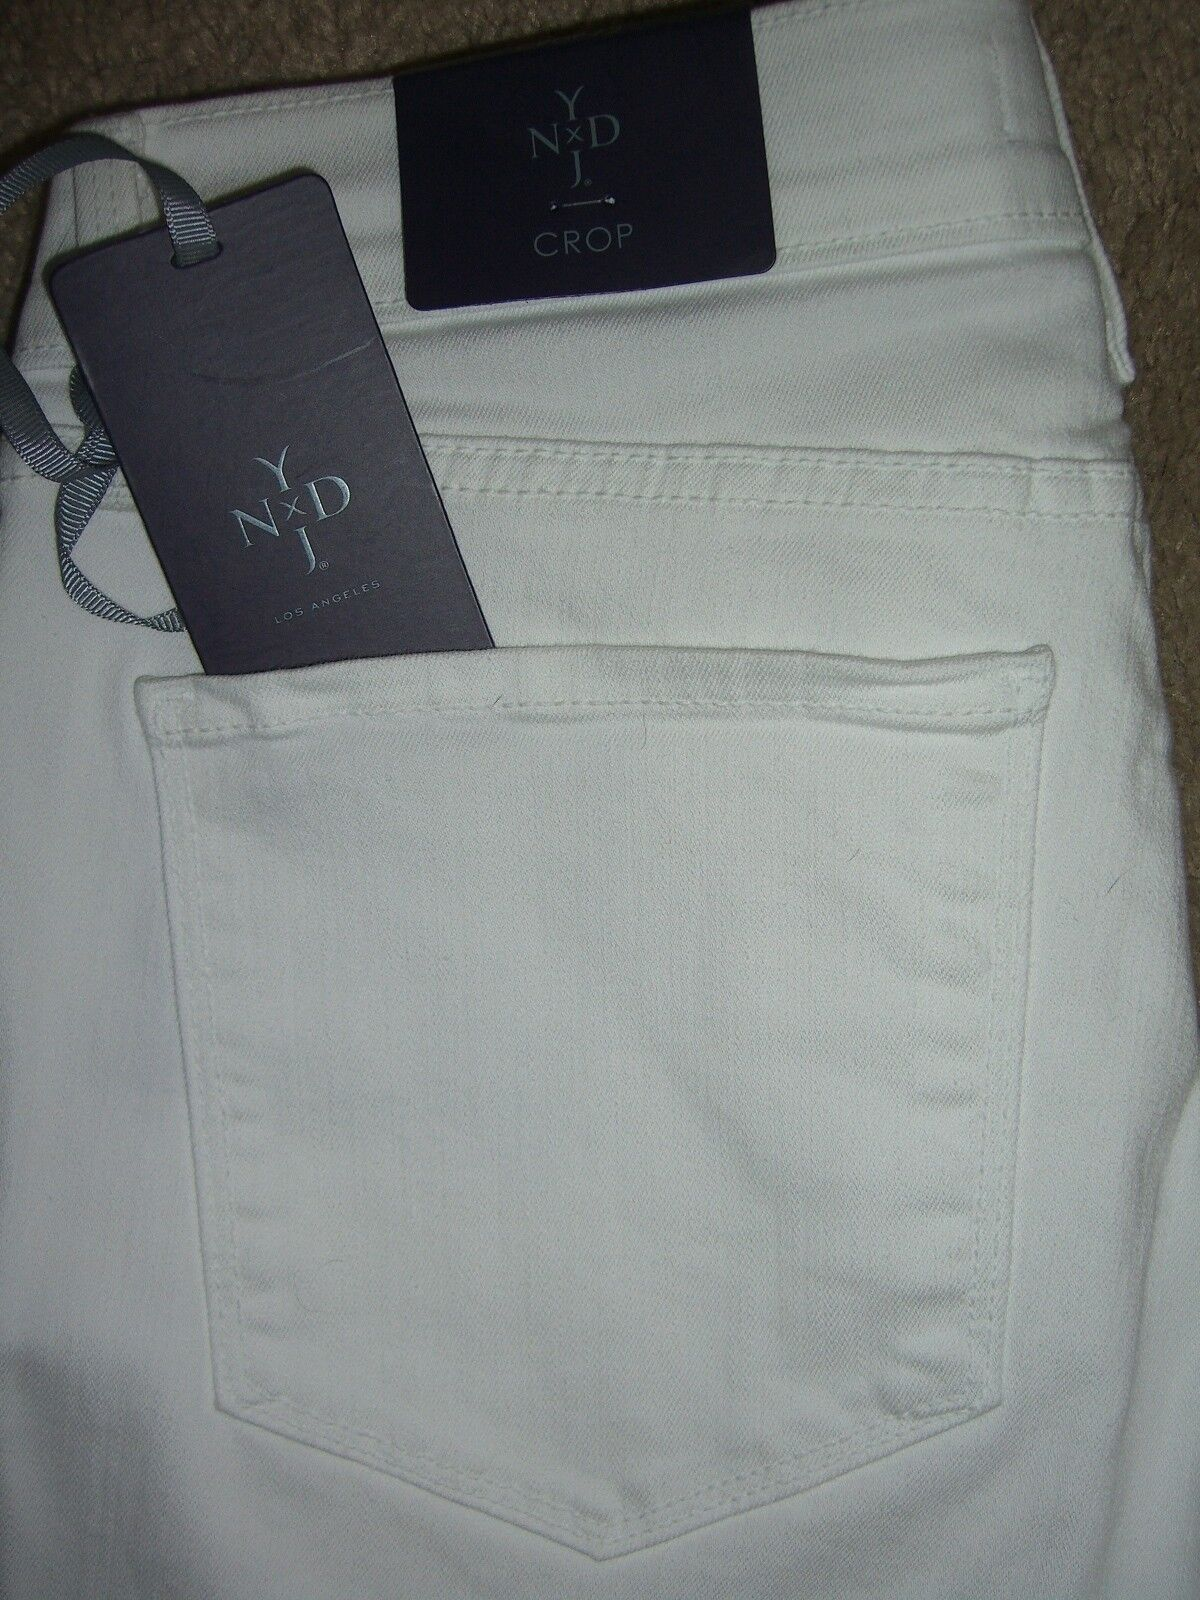 Not Your Daughter's Jeans NYDJ Crop Crystals White Jeans Sizes 0, 2 New  84